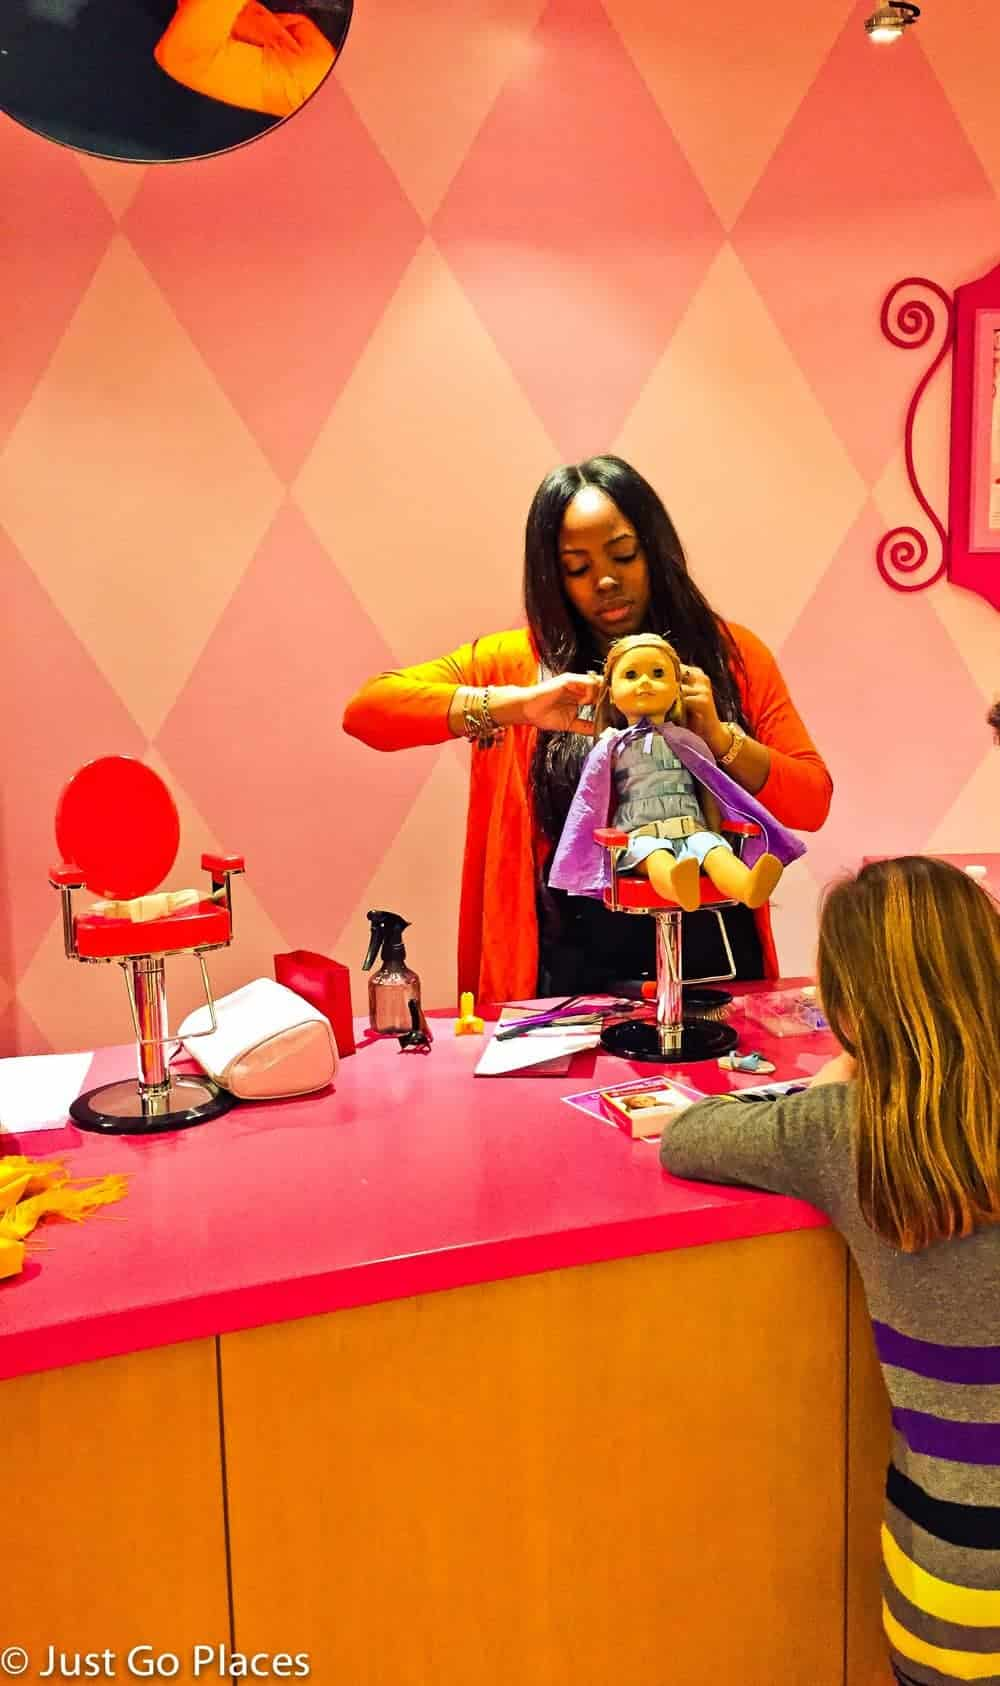 Family Friendly activities at Rockefeller Center